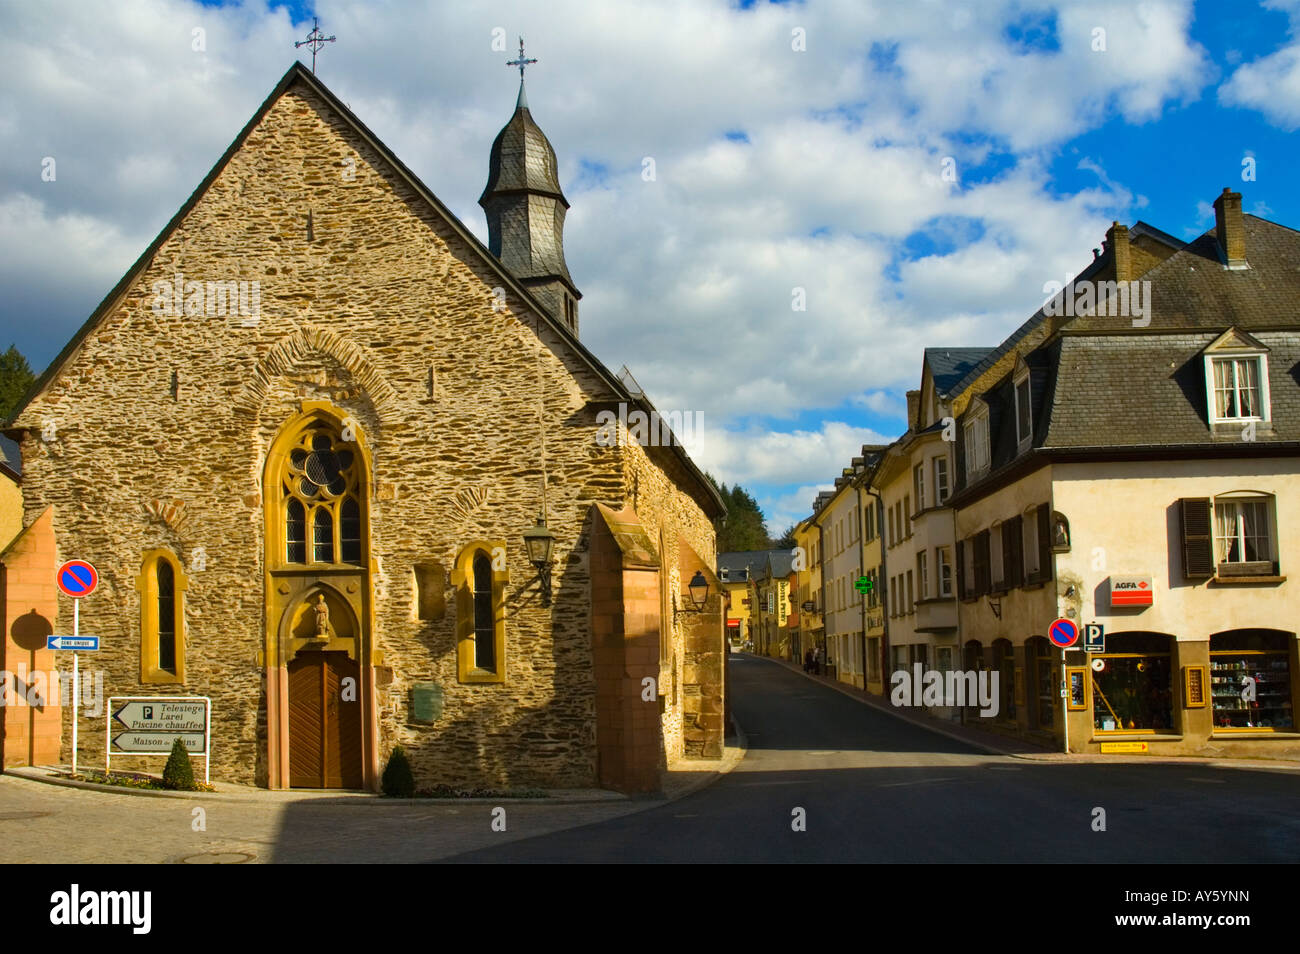 Rua Gare street with Eglise Saint Nicolas church in Vianden Luxembourg Europe - Stock Image